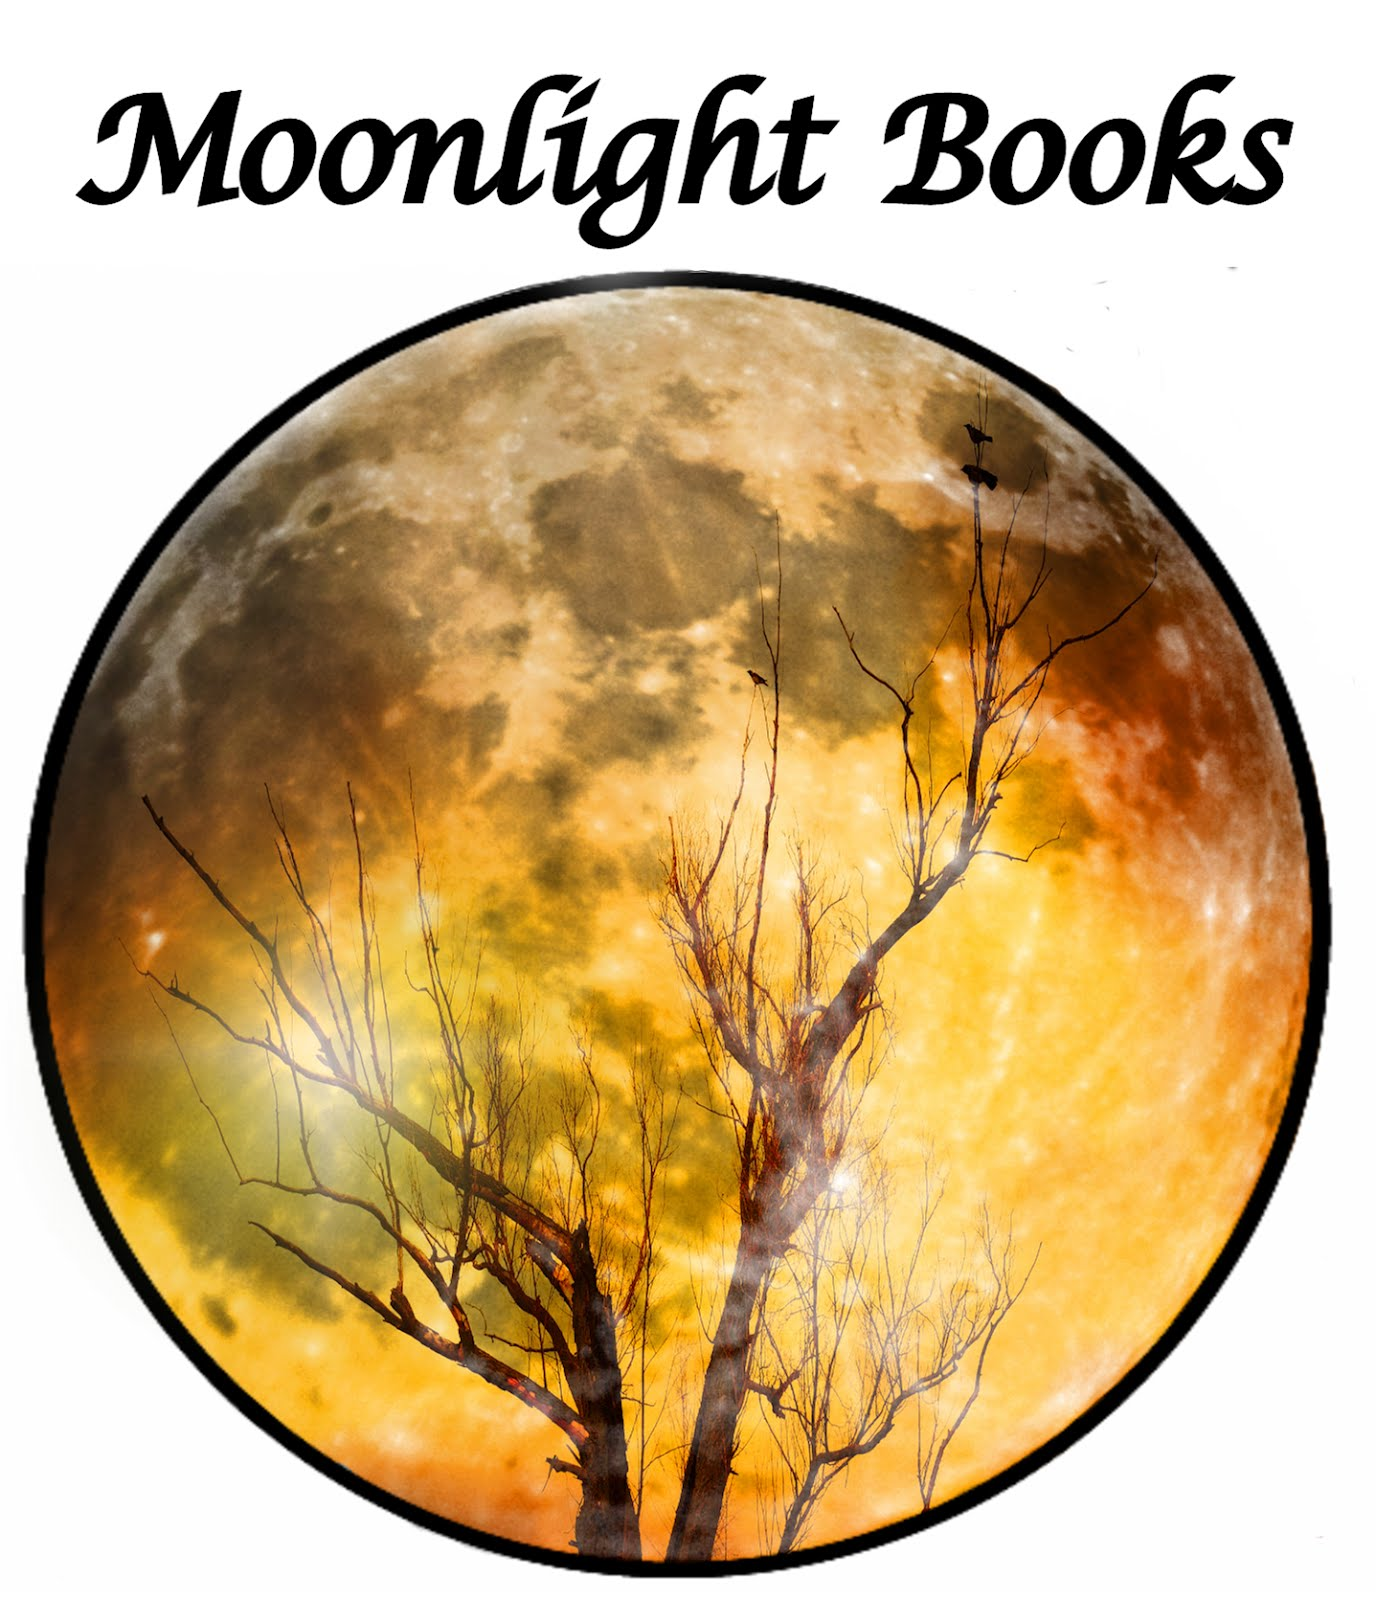 MOONLIGHT BOOKS